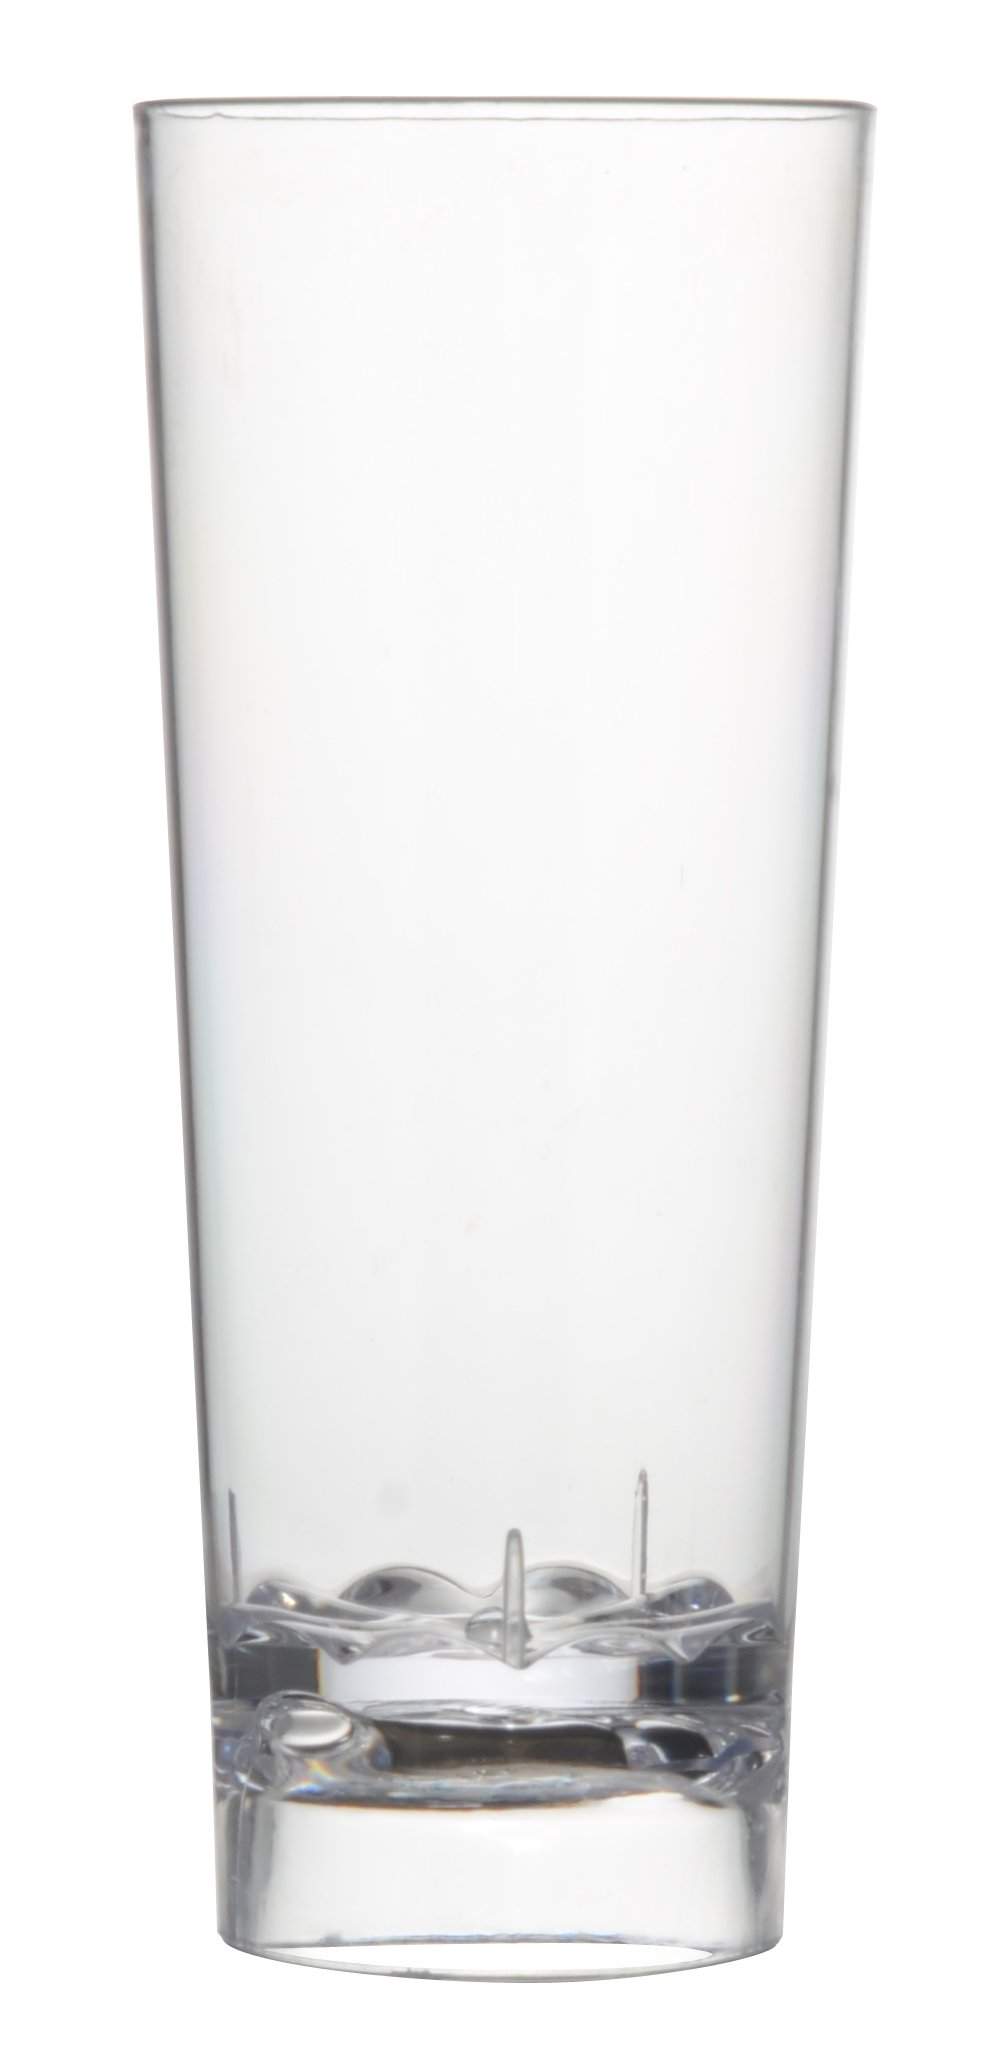 Fineline Settings Tiny Temptations Clear 2 Oz. Cordial Shot Glass  200 Pieces